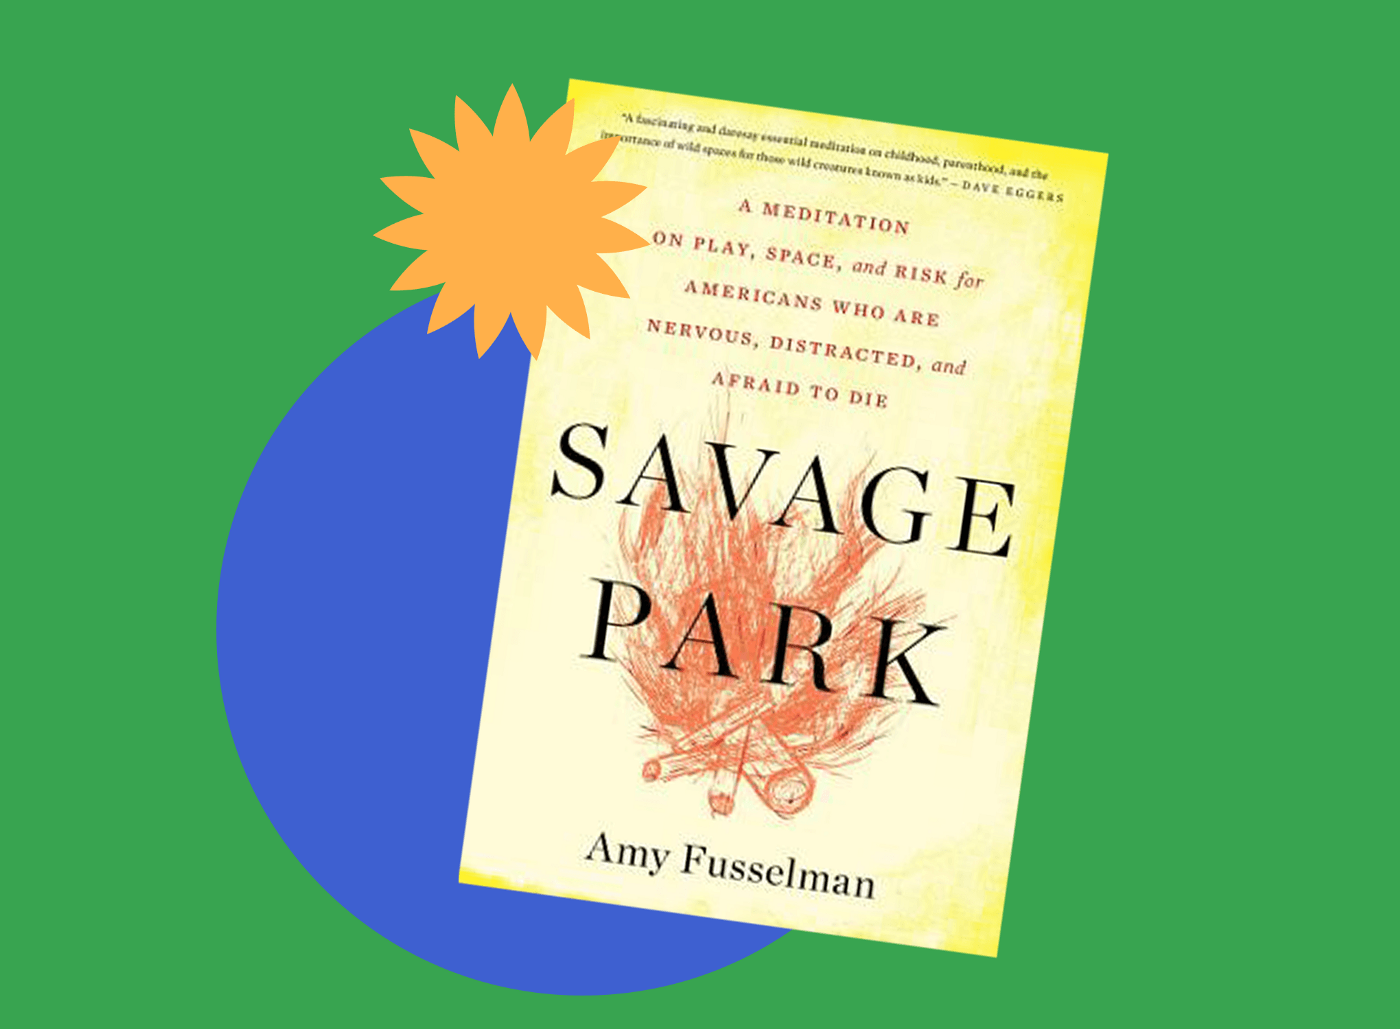 Book jacket cover for Savage Park by Amy Fusselman